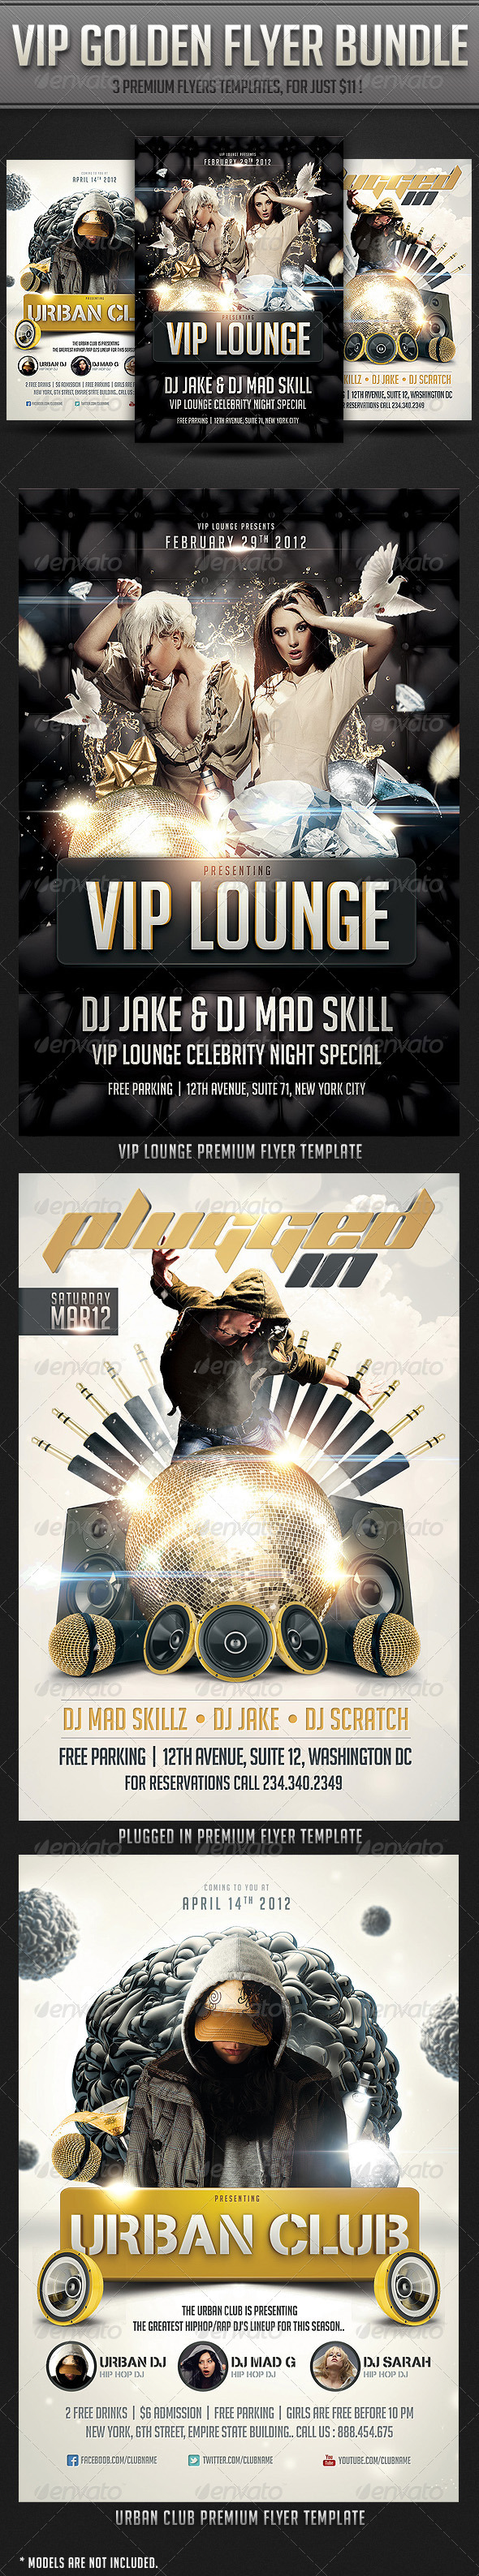 GraphicRiver VIP Golden flyer Bundle 2874156